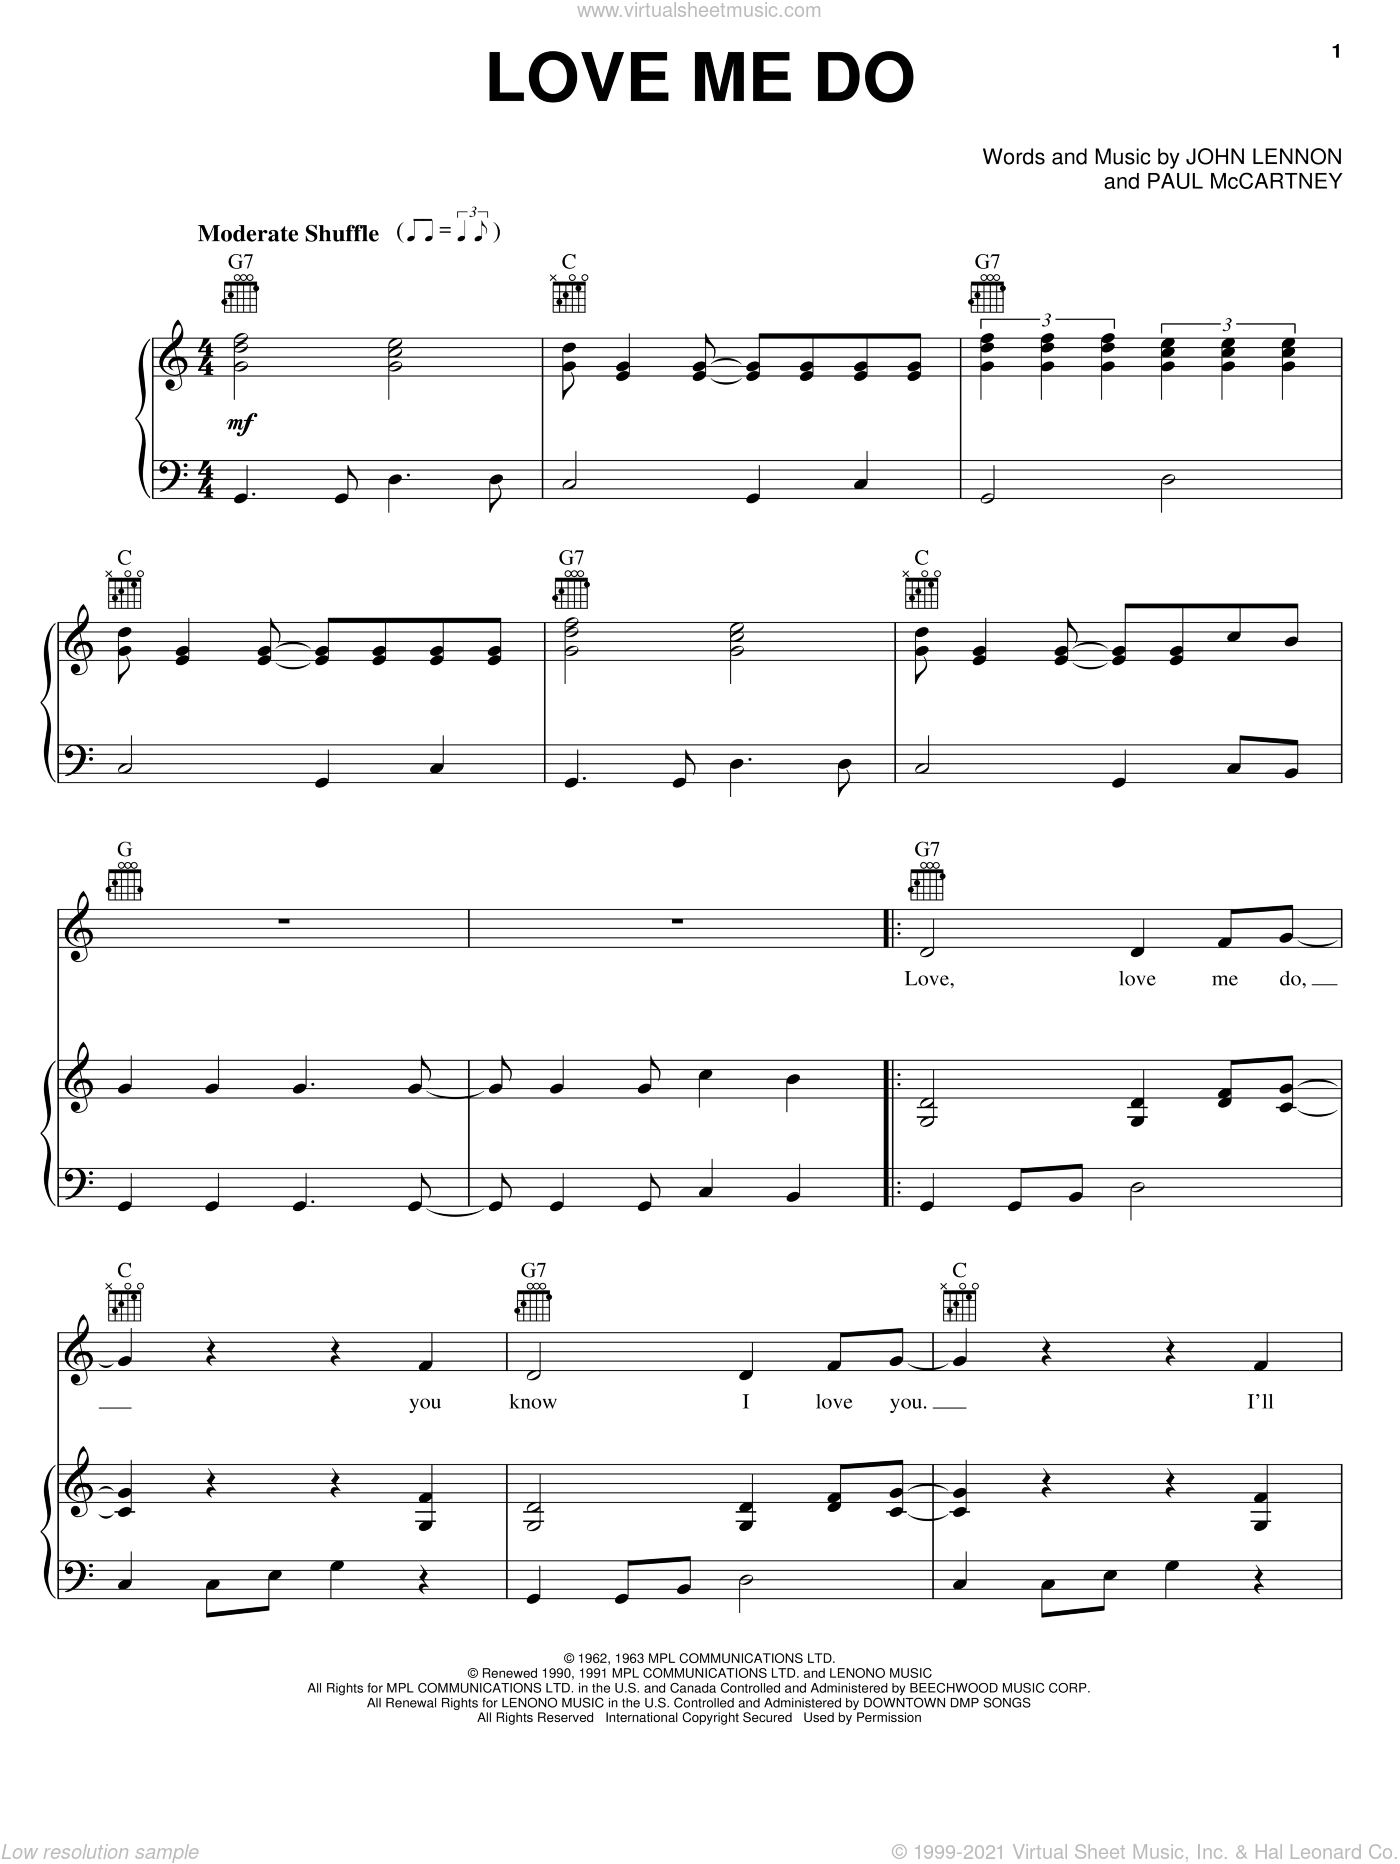 Love Me Do sheet music for voice, piano or guitar by Paul McCartney, The Beatles and John Lennon. Score Image Preview.